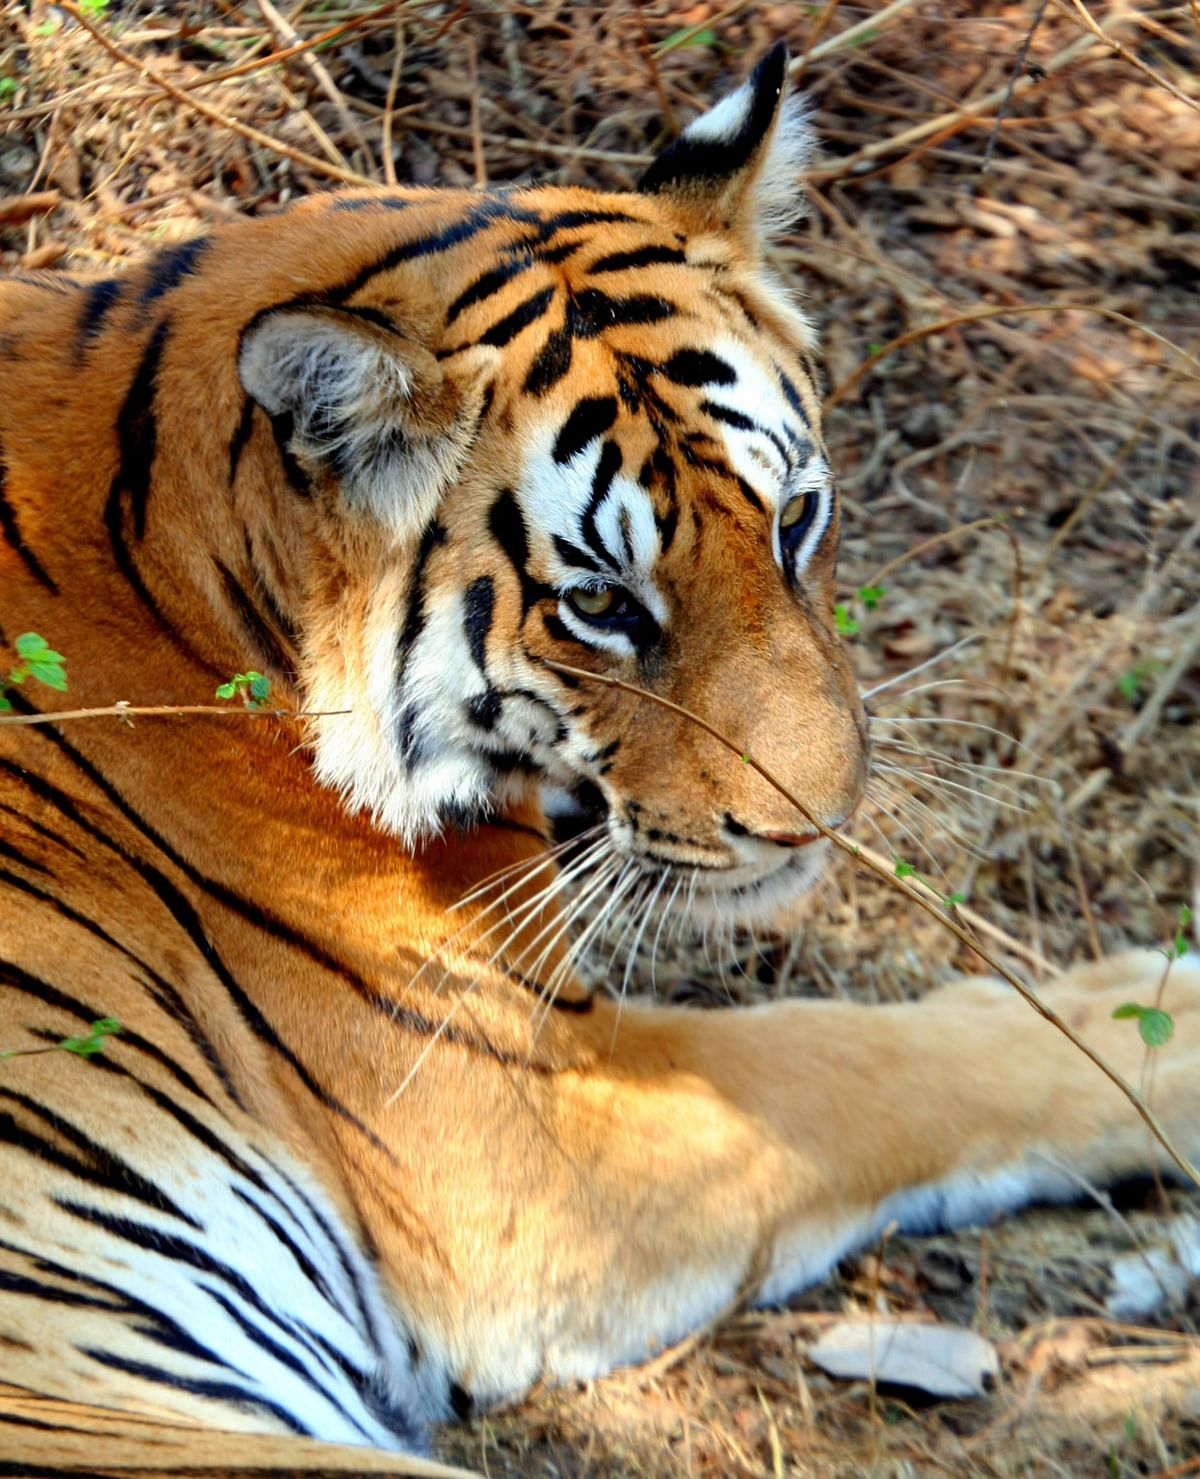 A tigress rests in the shade at Pench National Park in the Seoni District of Madhya Pradesh. (Adam Majendie/Bloomberg News)